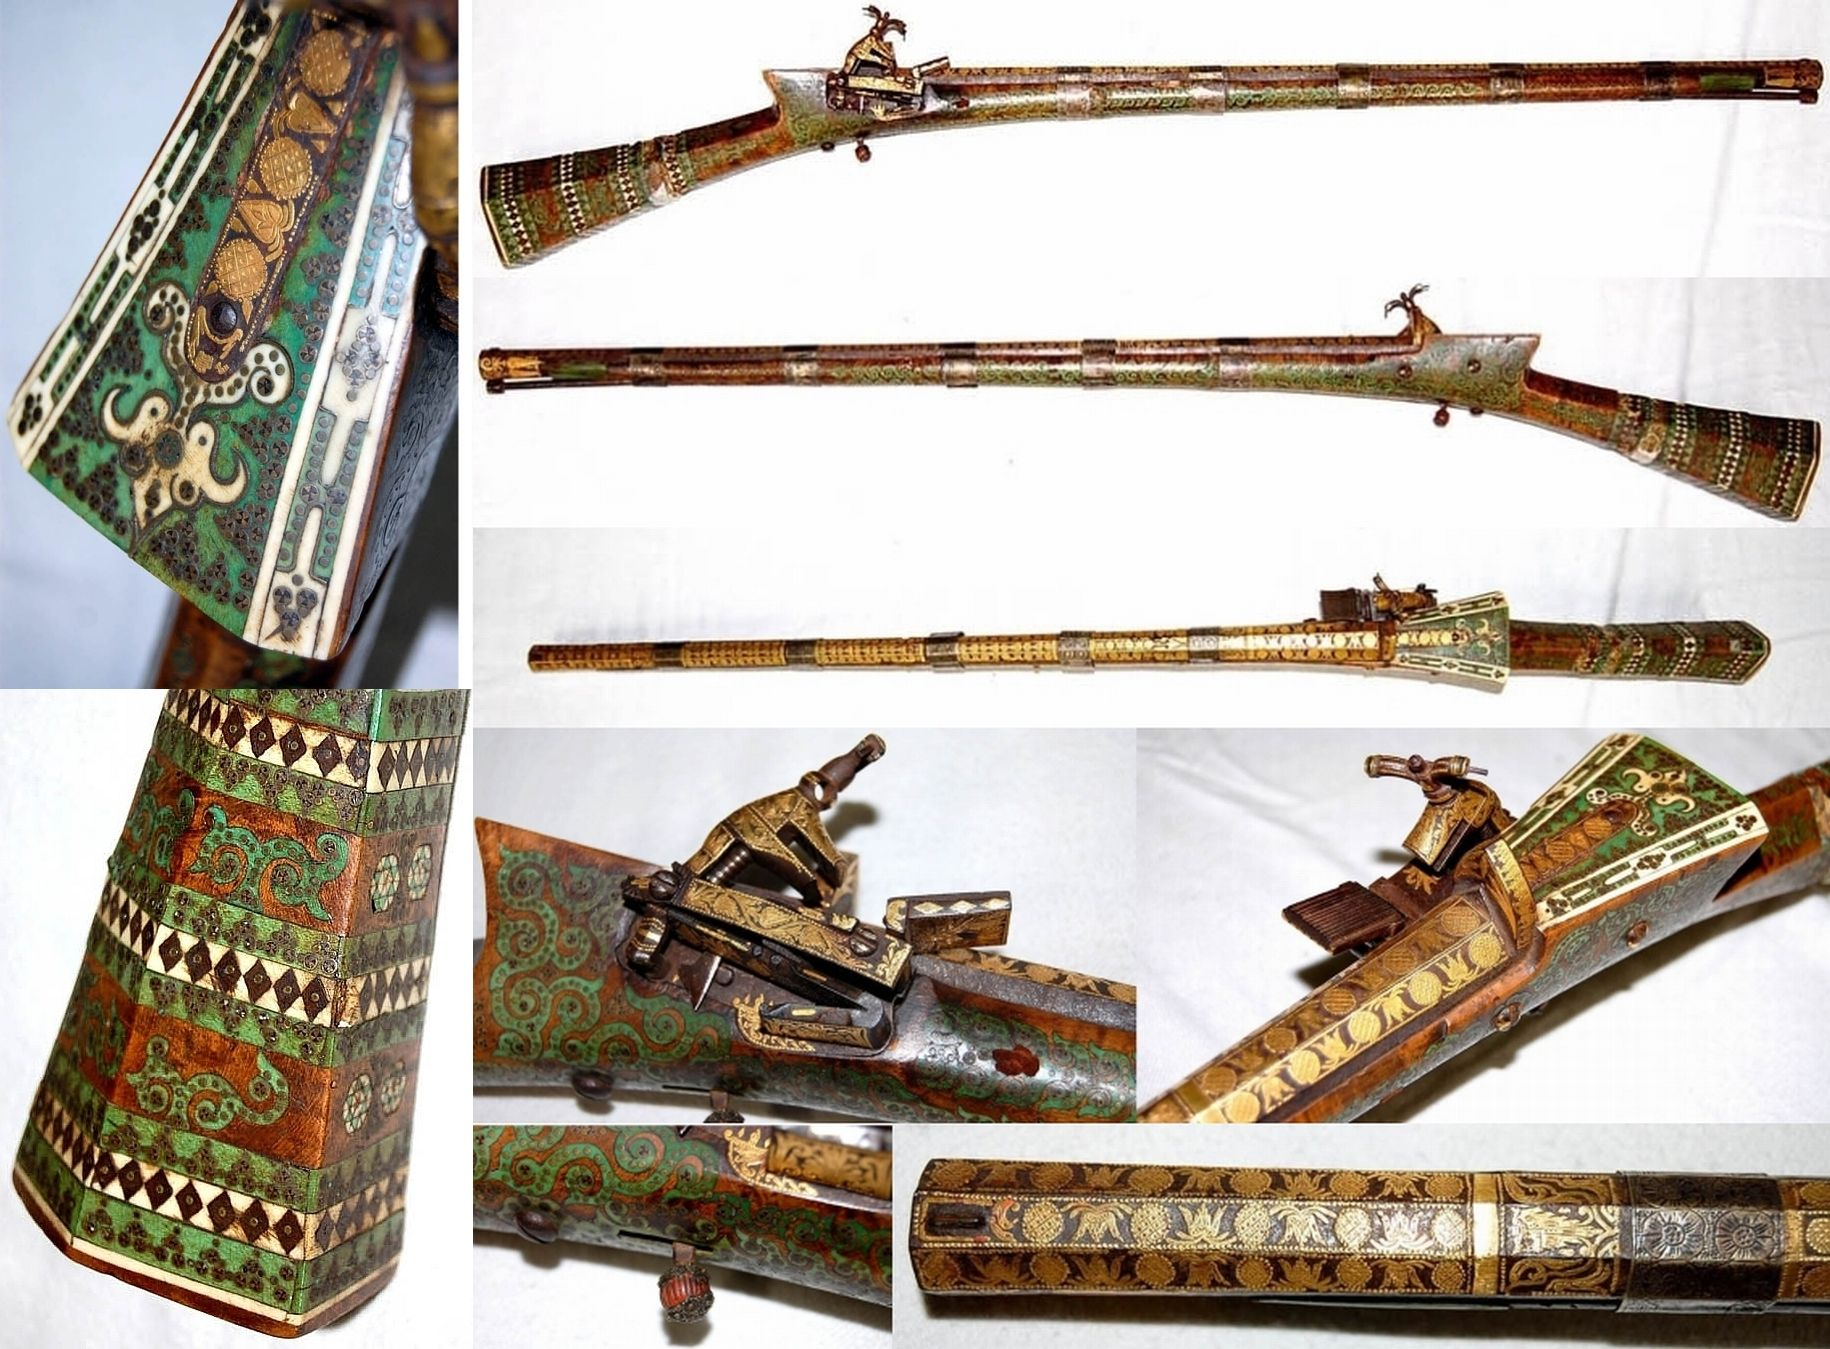 Ottoman flintlock rifle, 19th c, superbly decorated with green enamel and elaborate inlays of ivory small metal inserts, with gold damascening on the barrel and lock, 18th to 19th century.